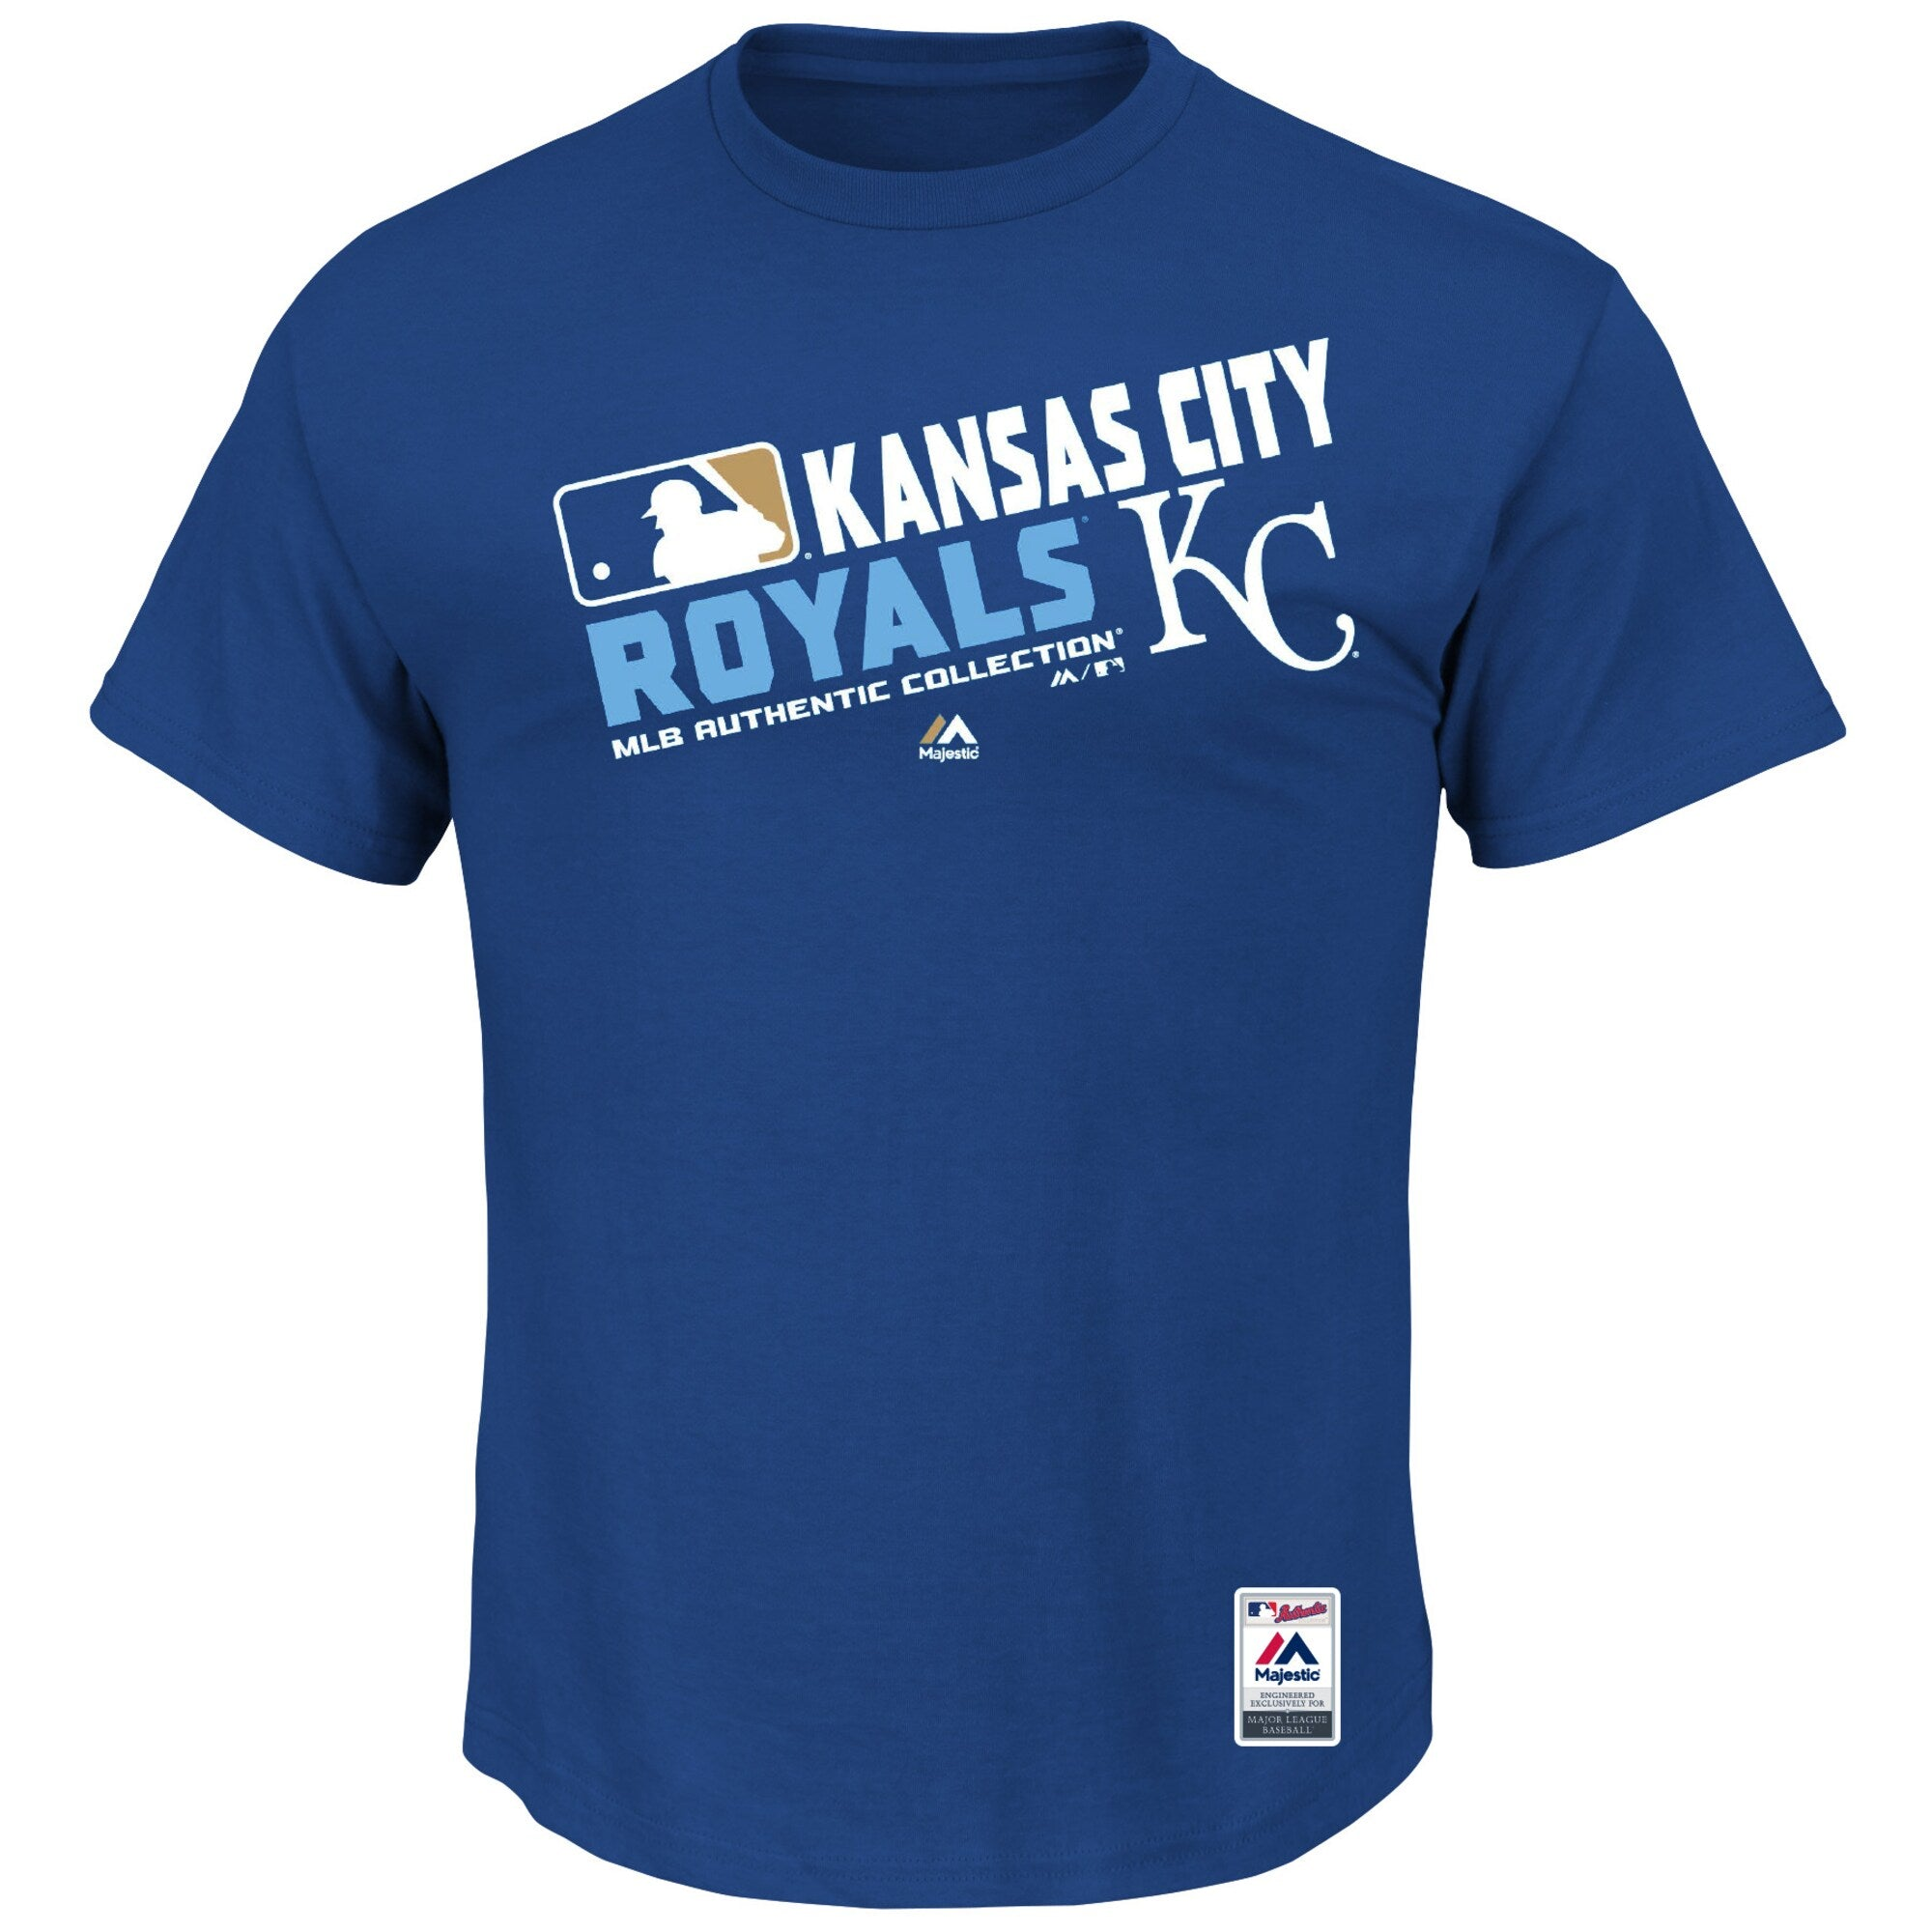 Kansas City Royals Team Choice T-Shirt